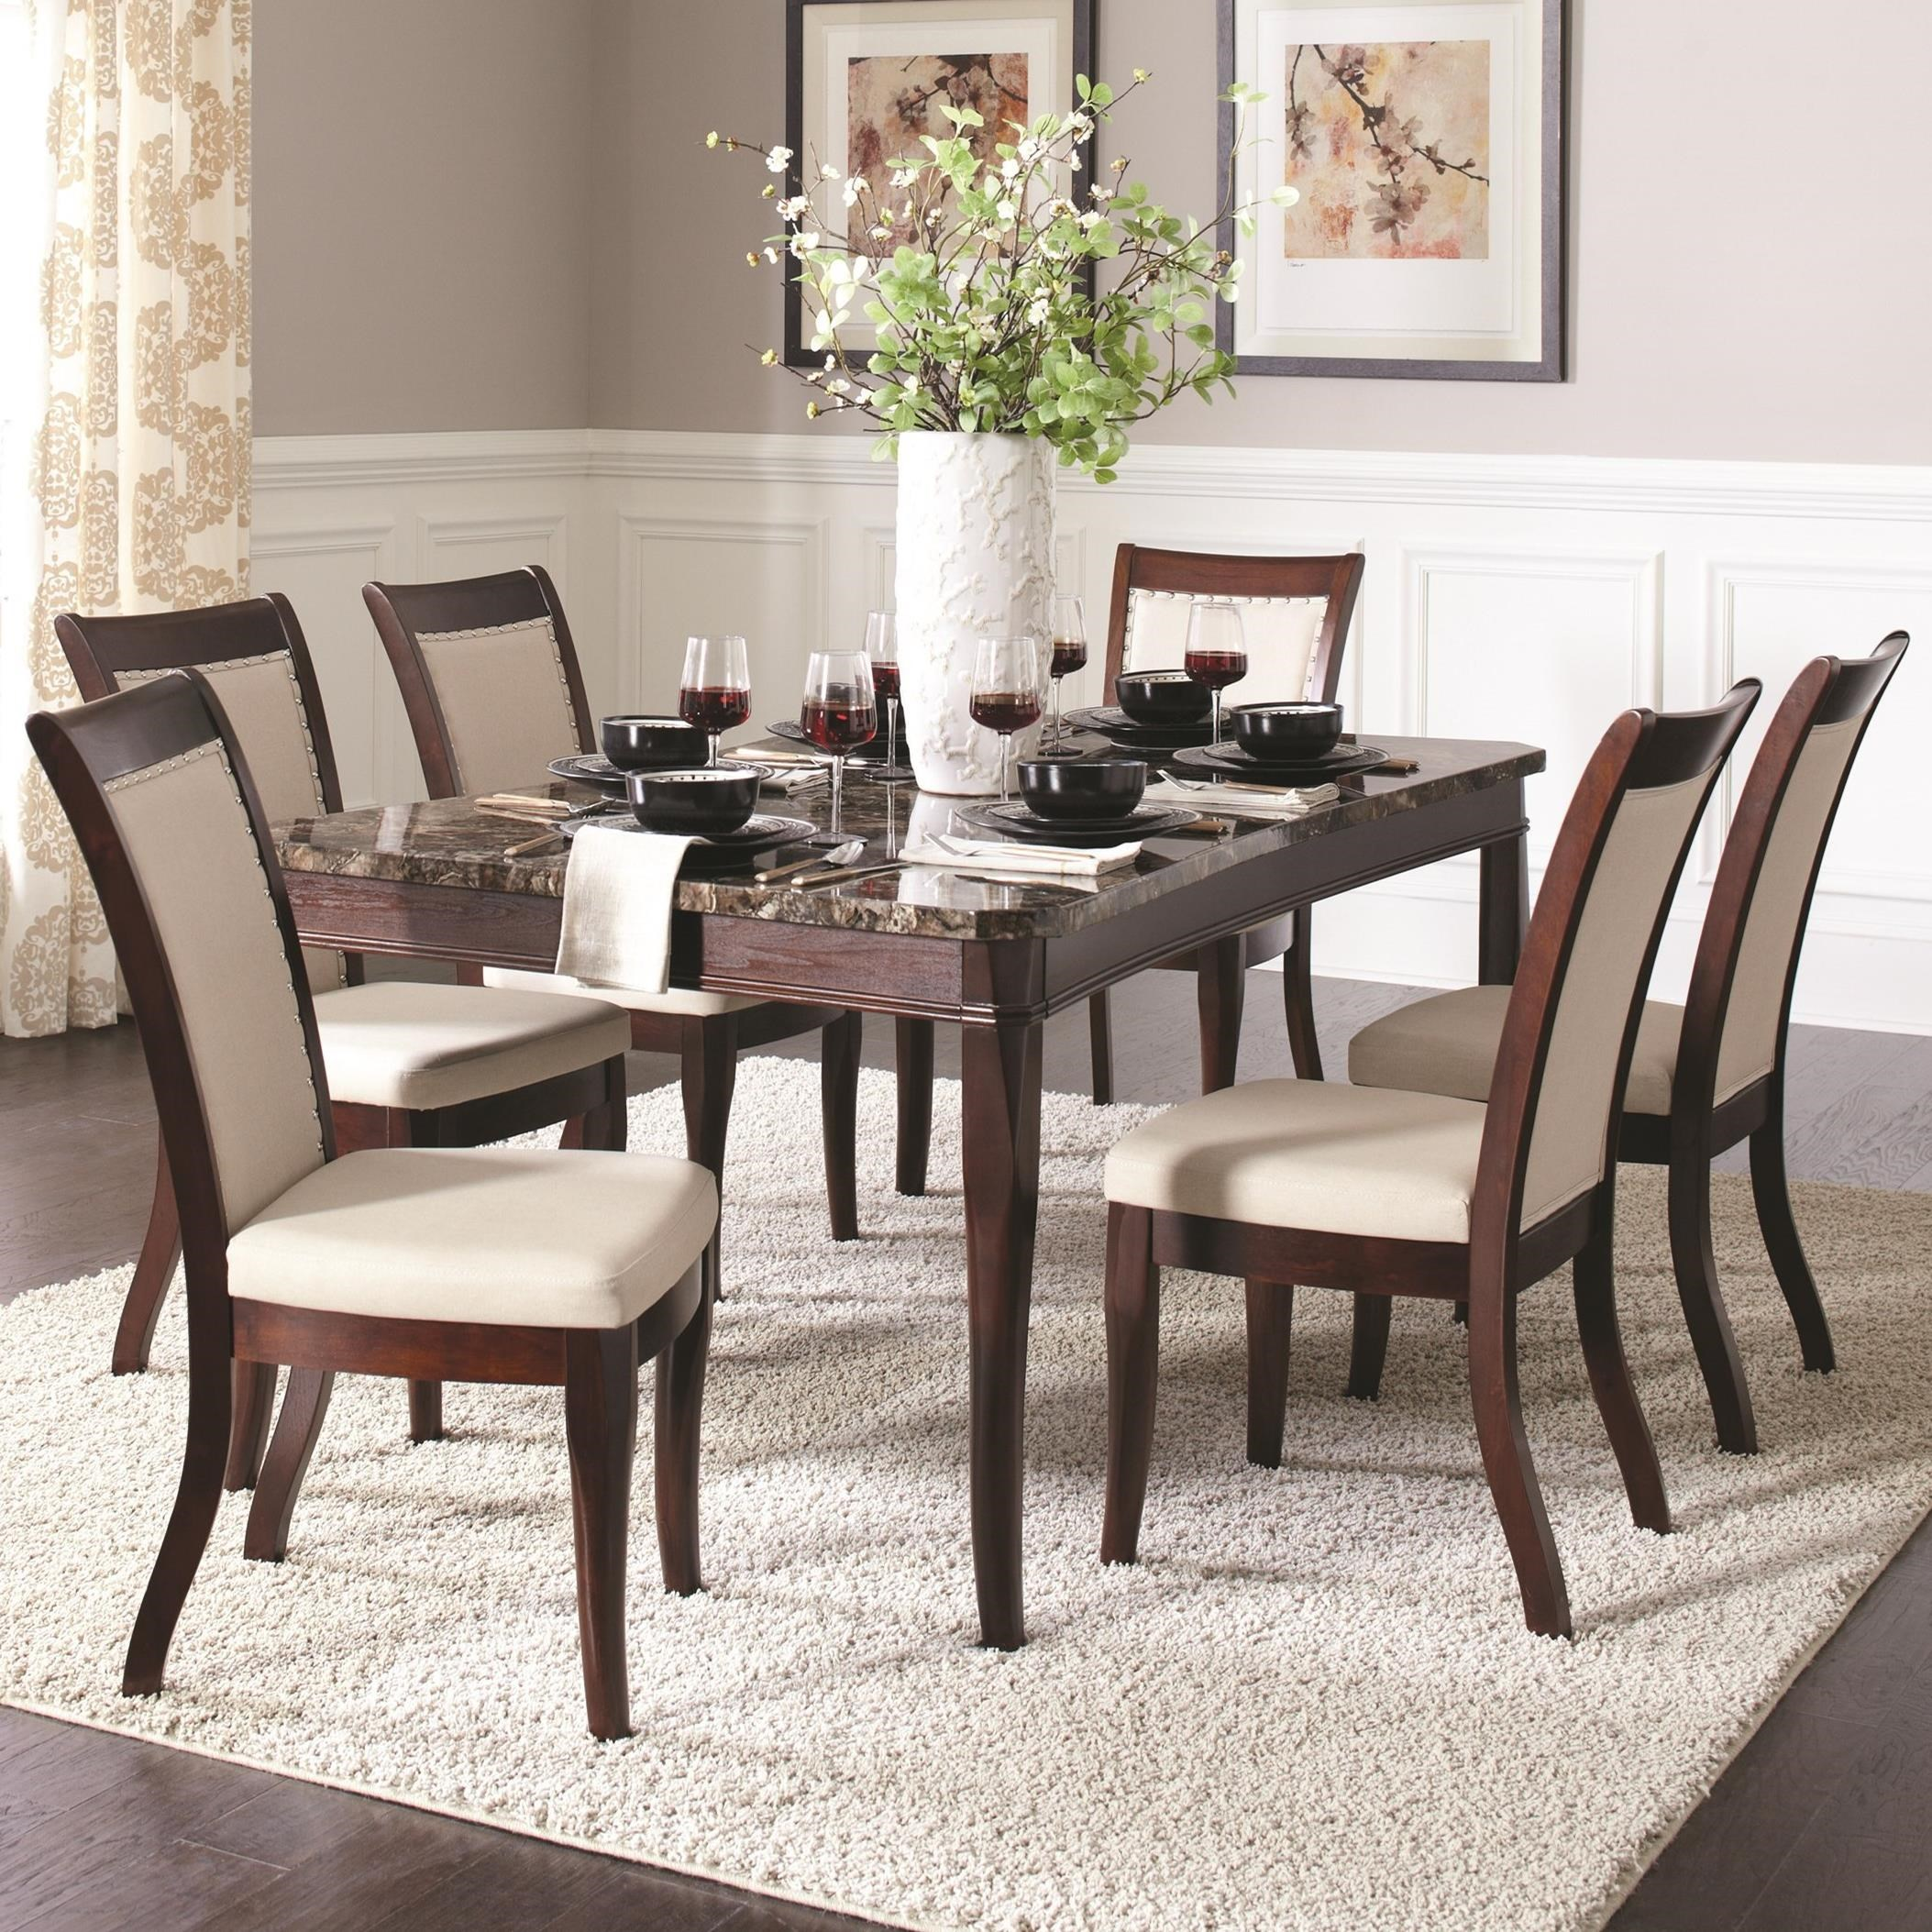 Cornett 7pc Dark Brown Dining Table Set